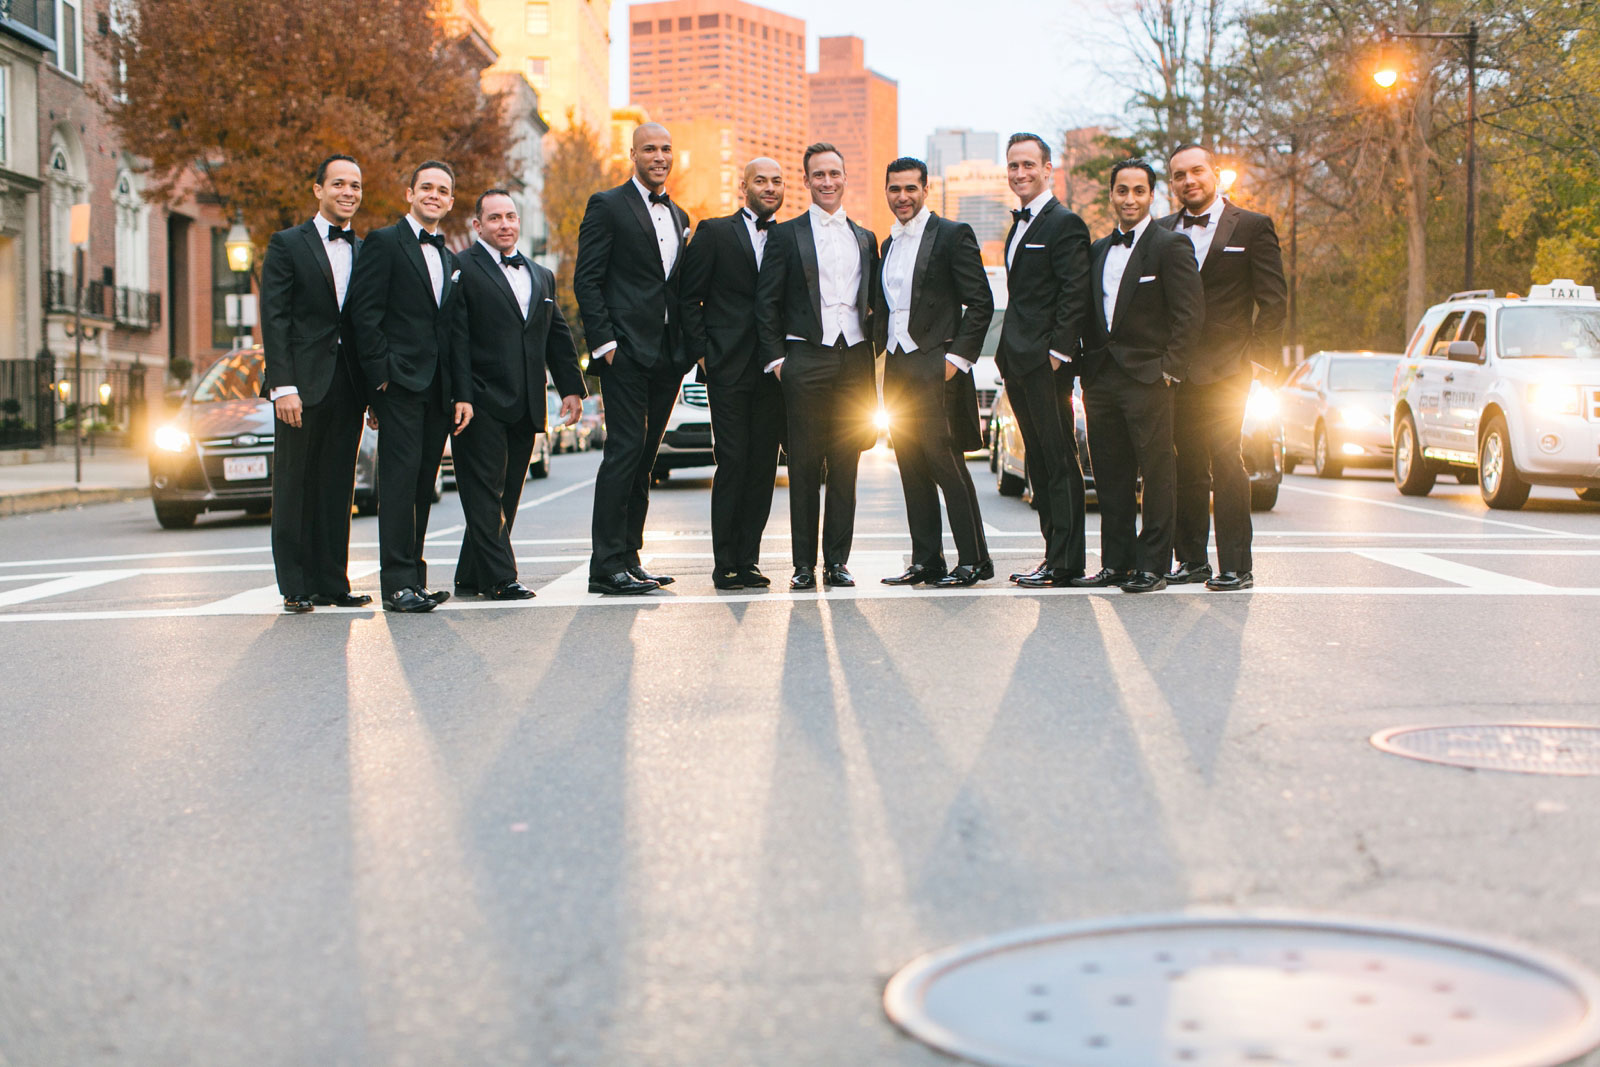 Groomsmen portrait in middle of the street during golden hour in Boston's back bay neighborhood